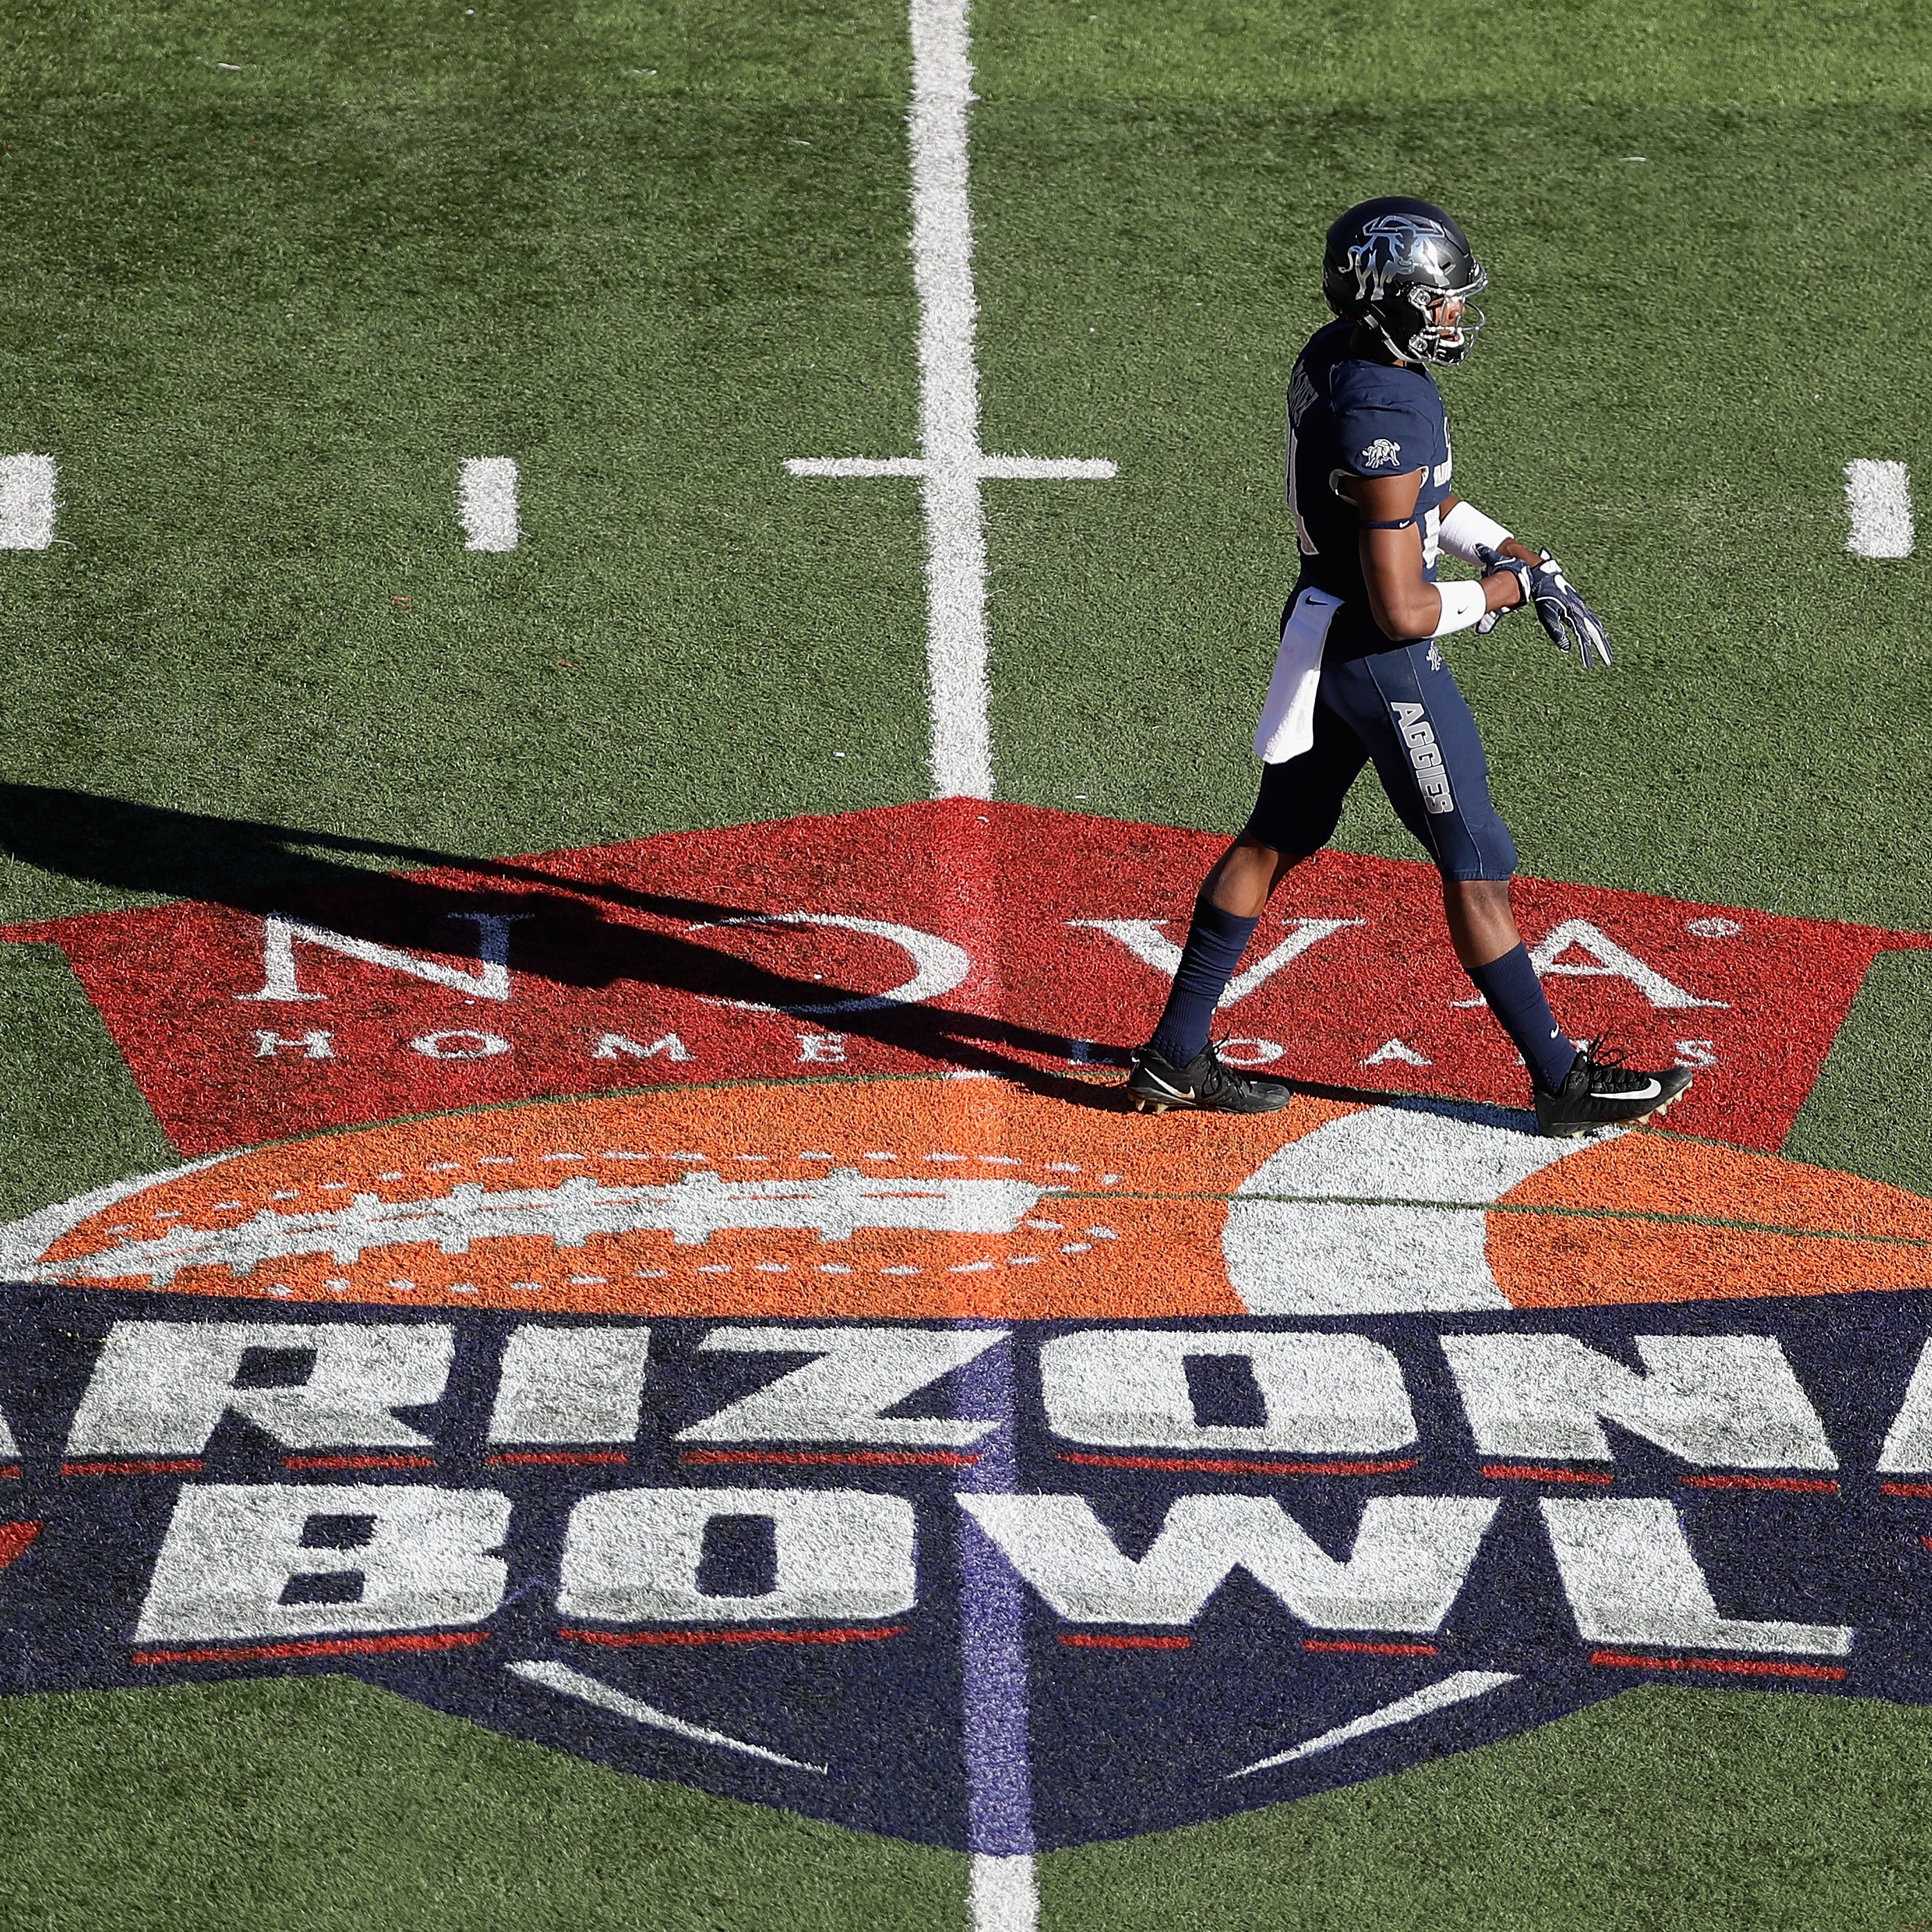 State sports commission sues Arizona Bowl, claiming breach of contract